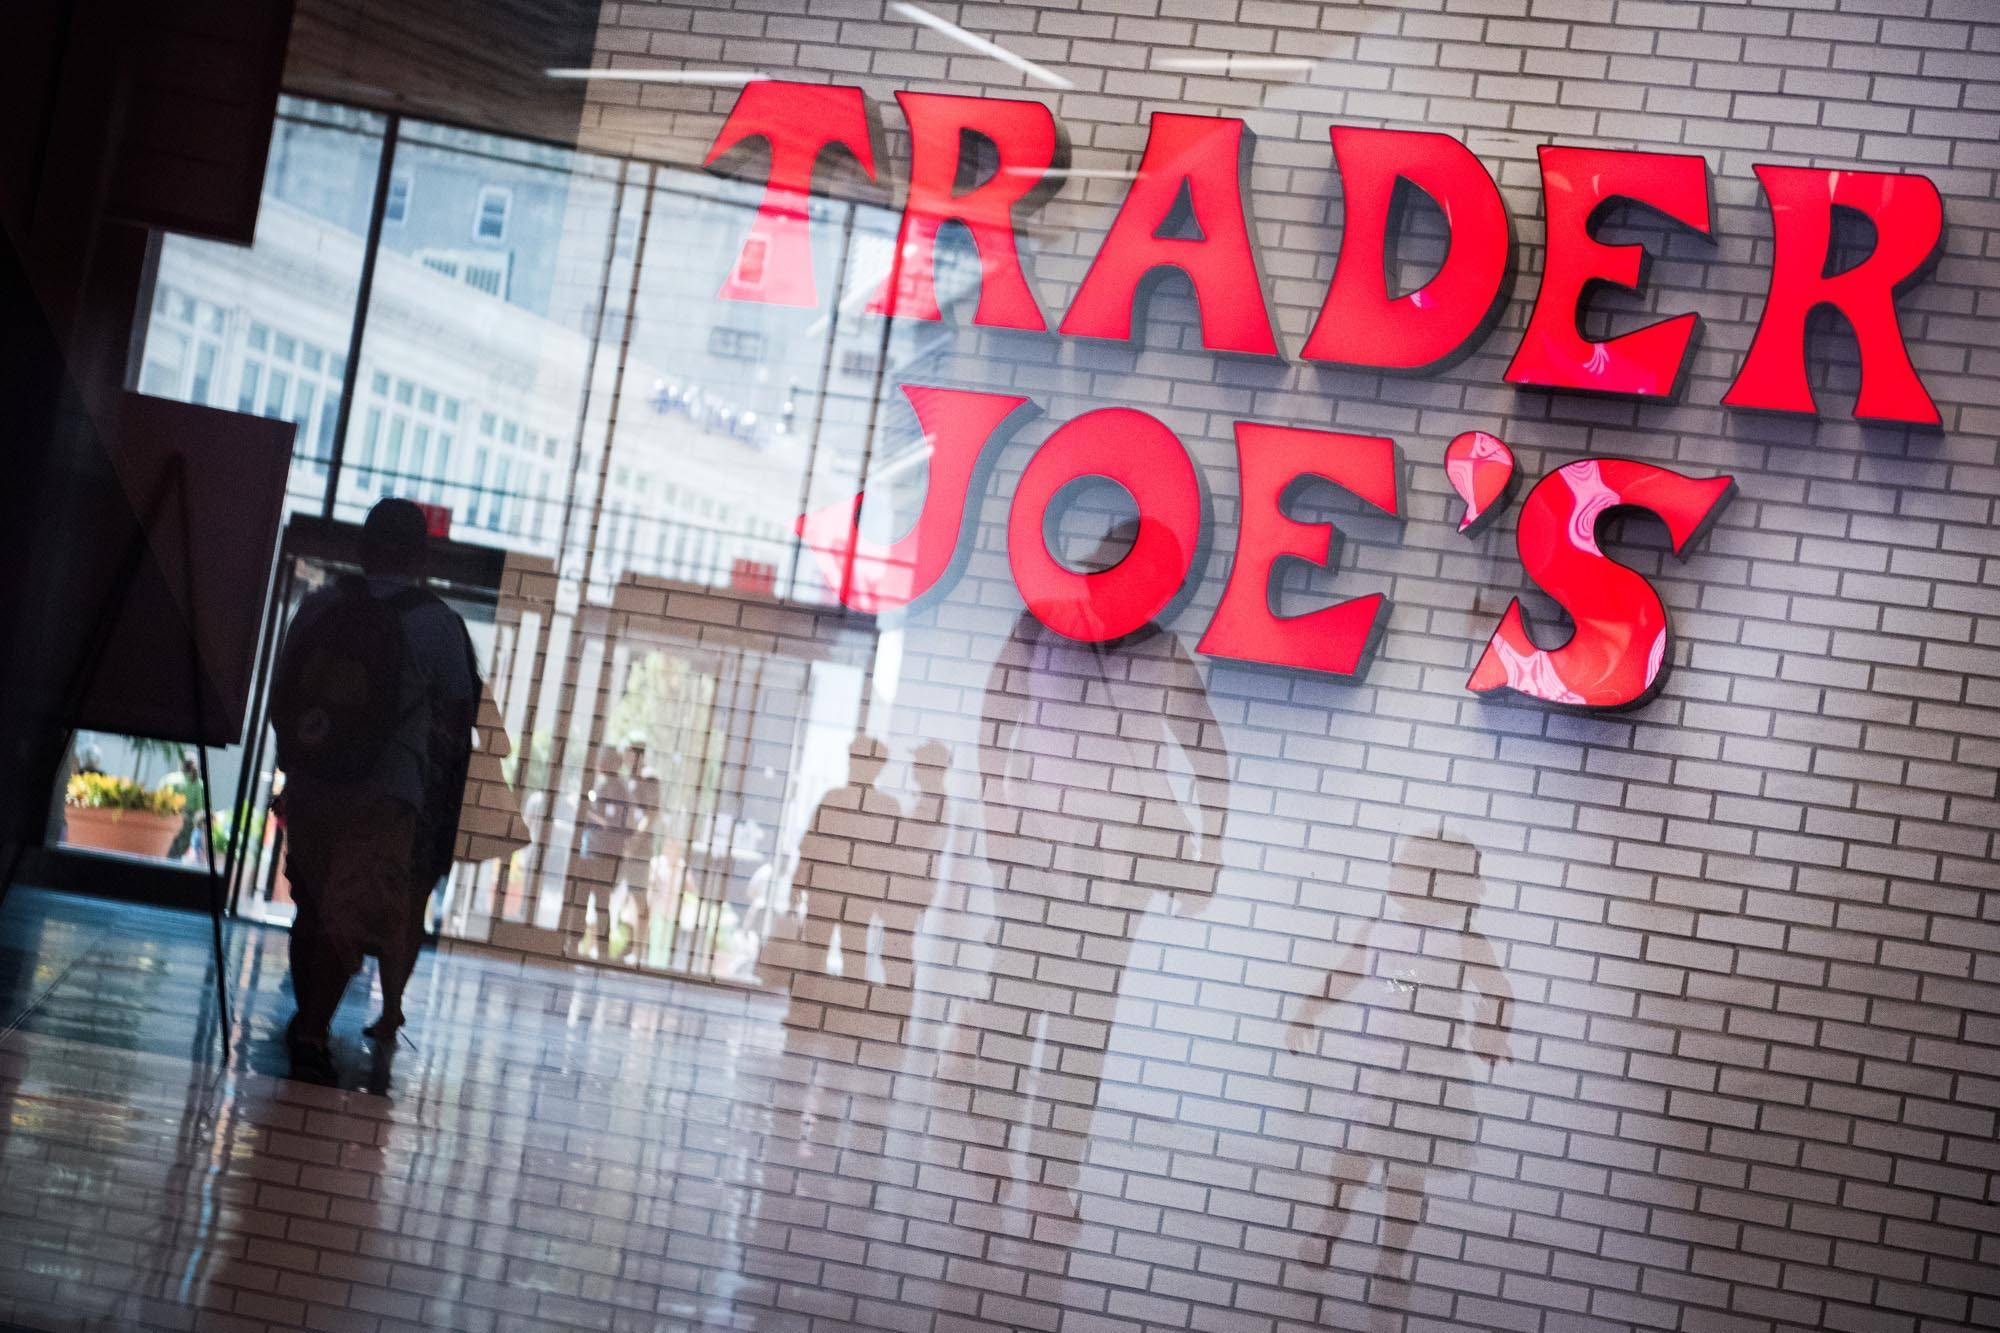 Trader Joe's will remove two controversial substances from its register receipts, according to a statement on the company's website.